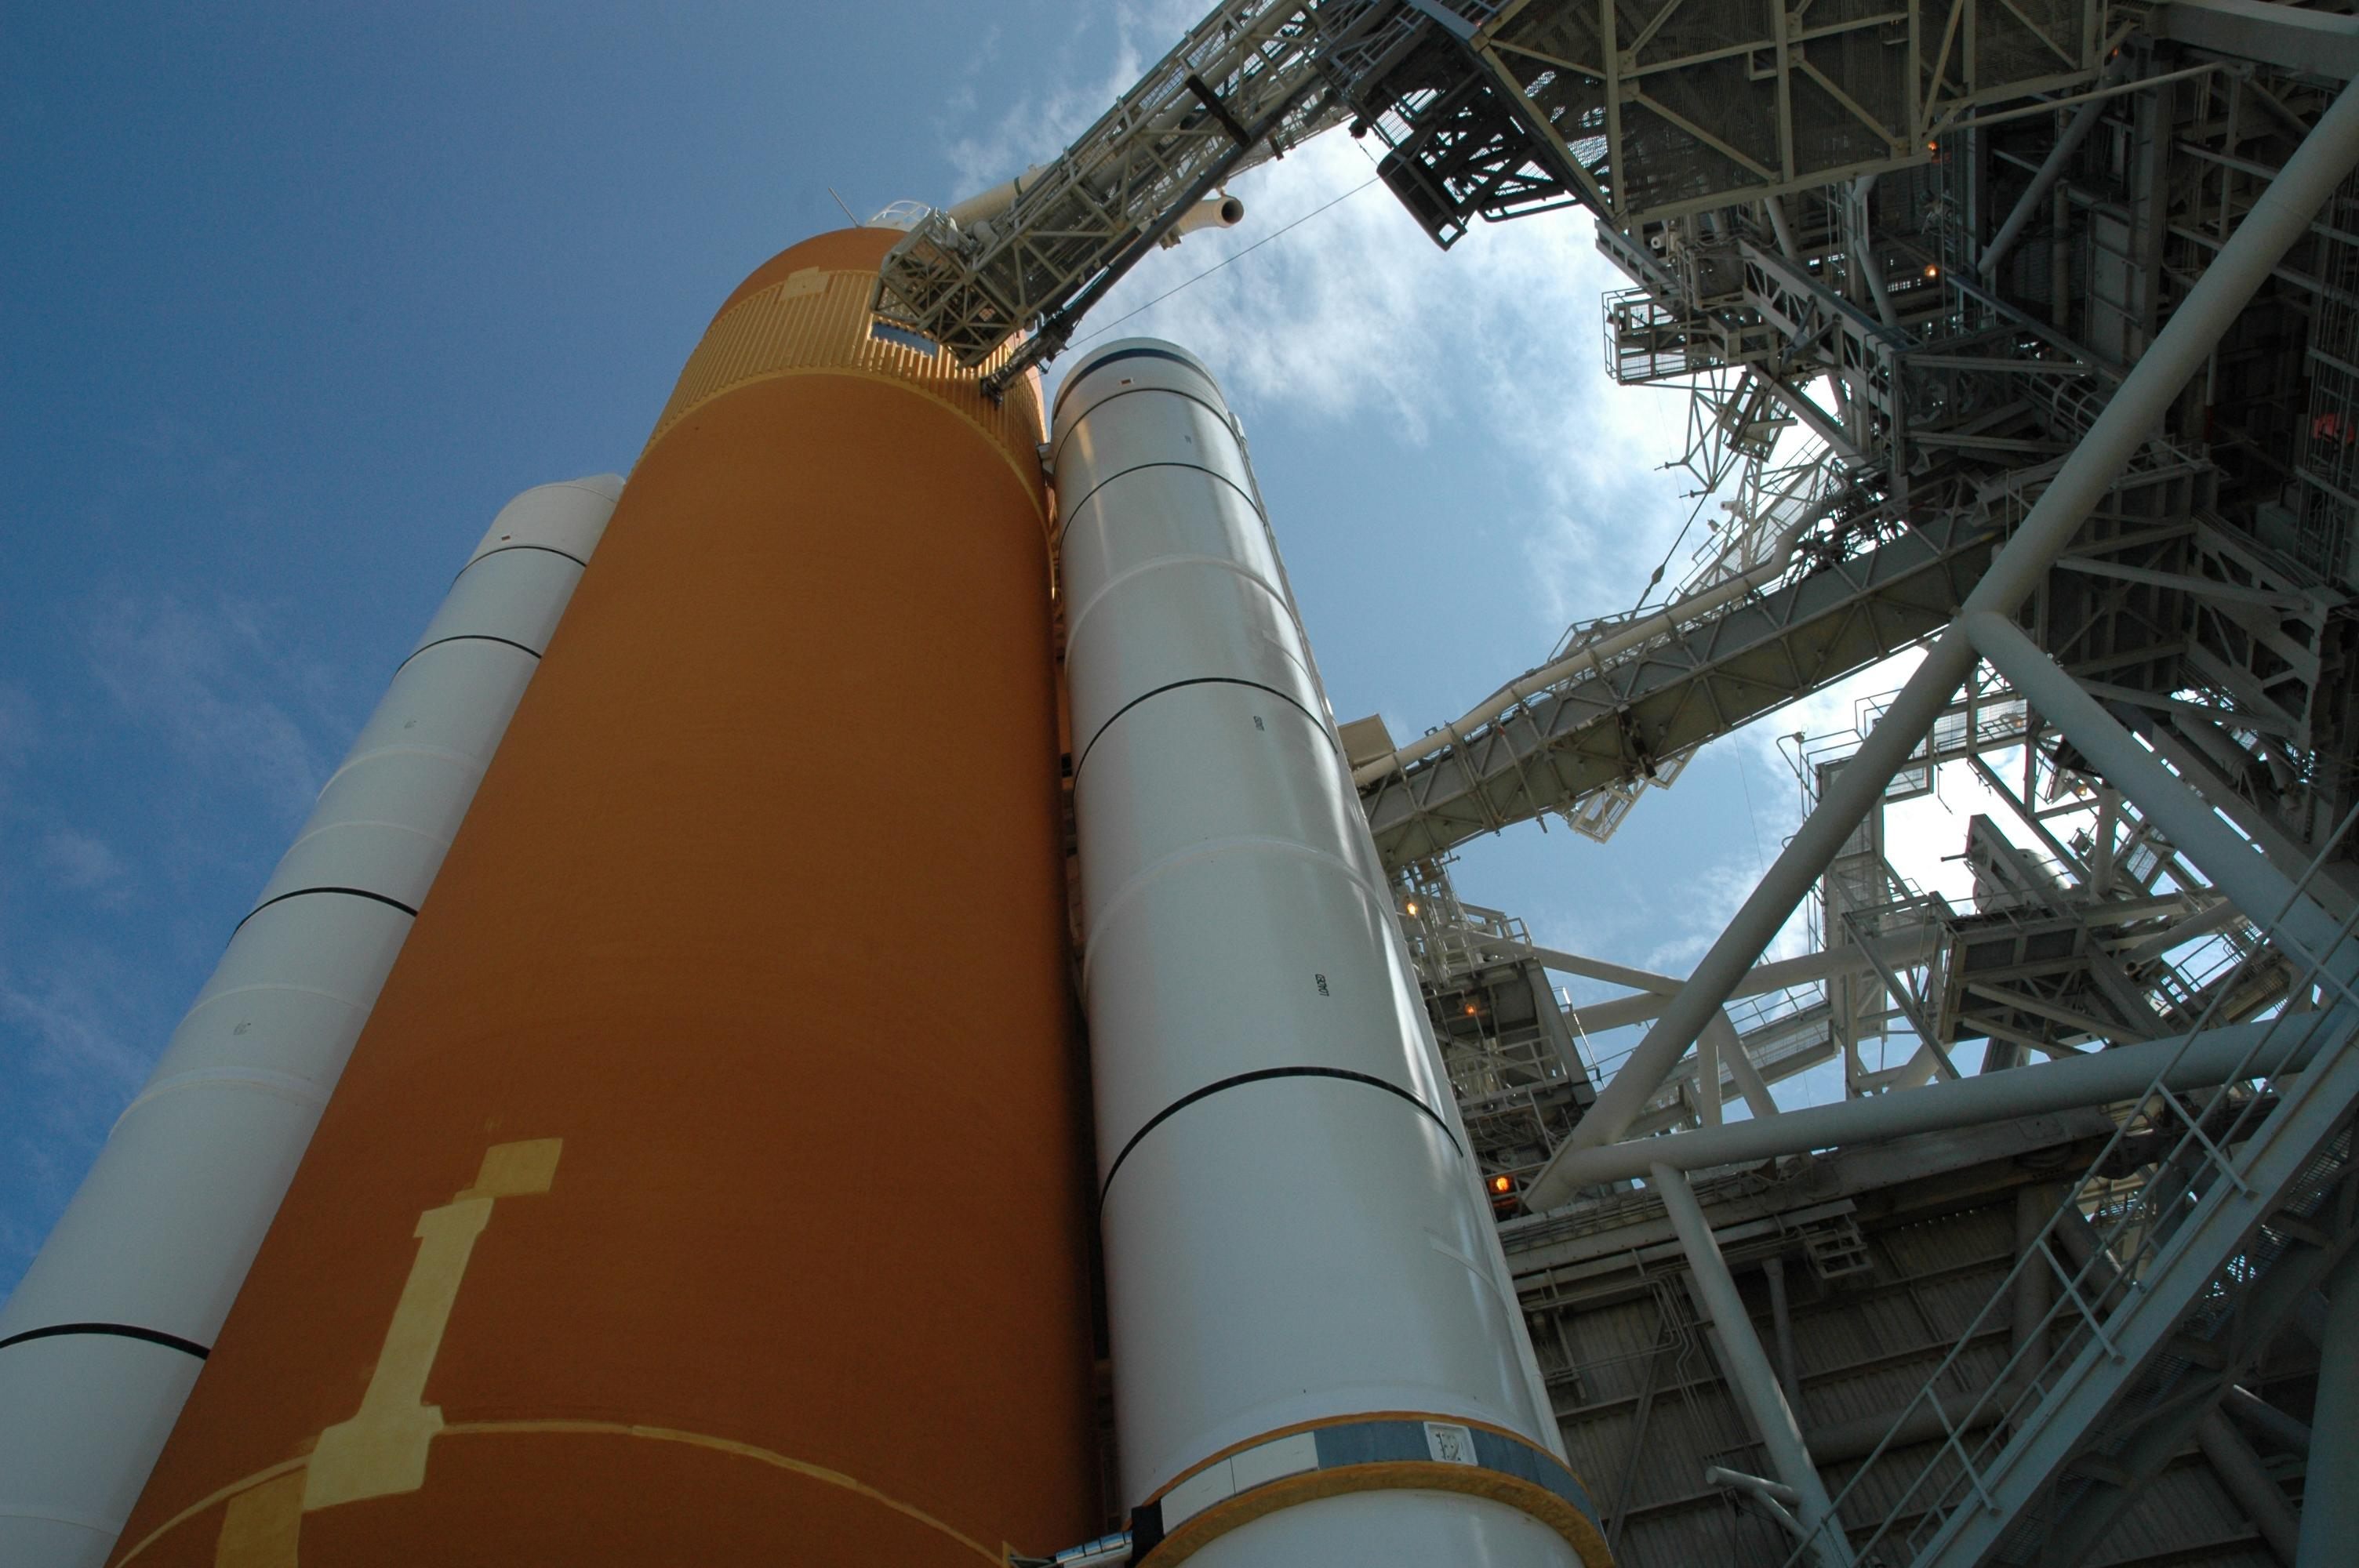 space shuttle srb engines - photo #37